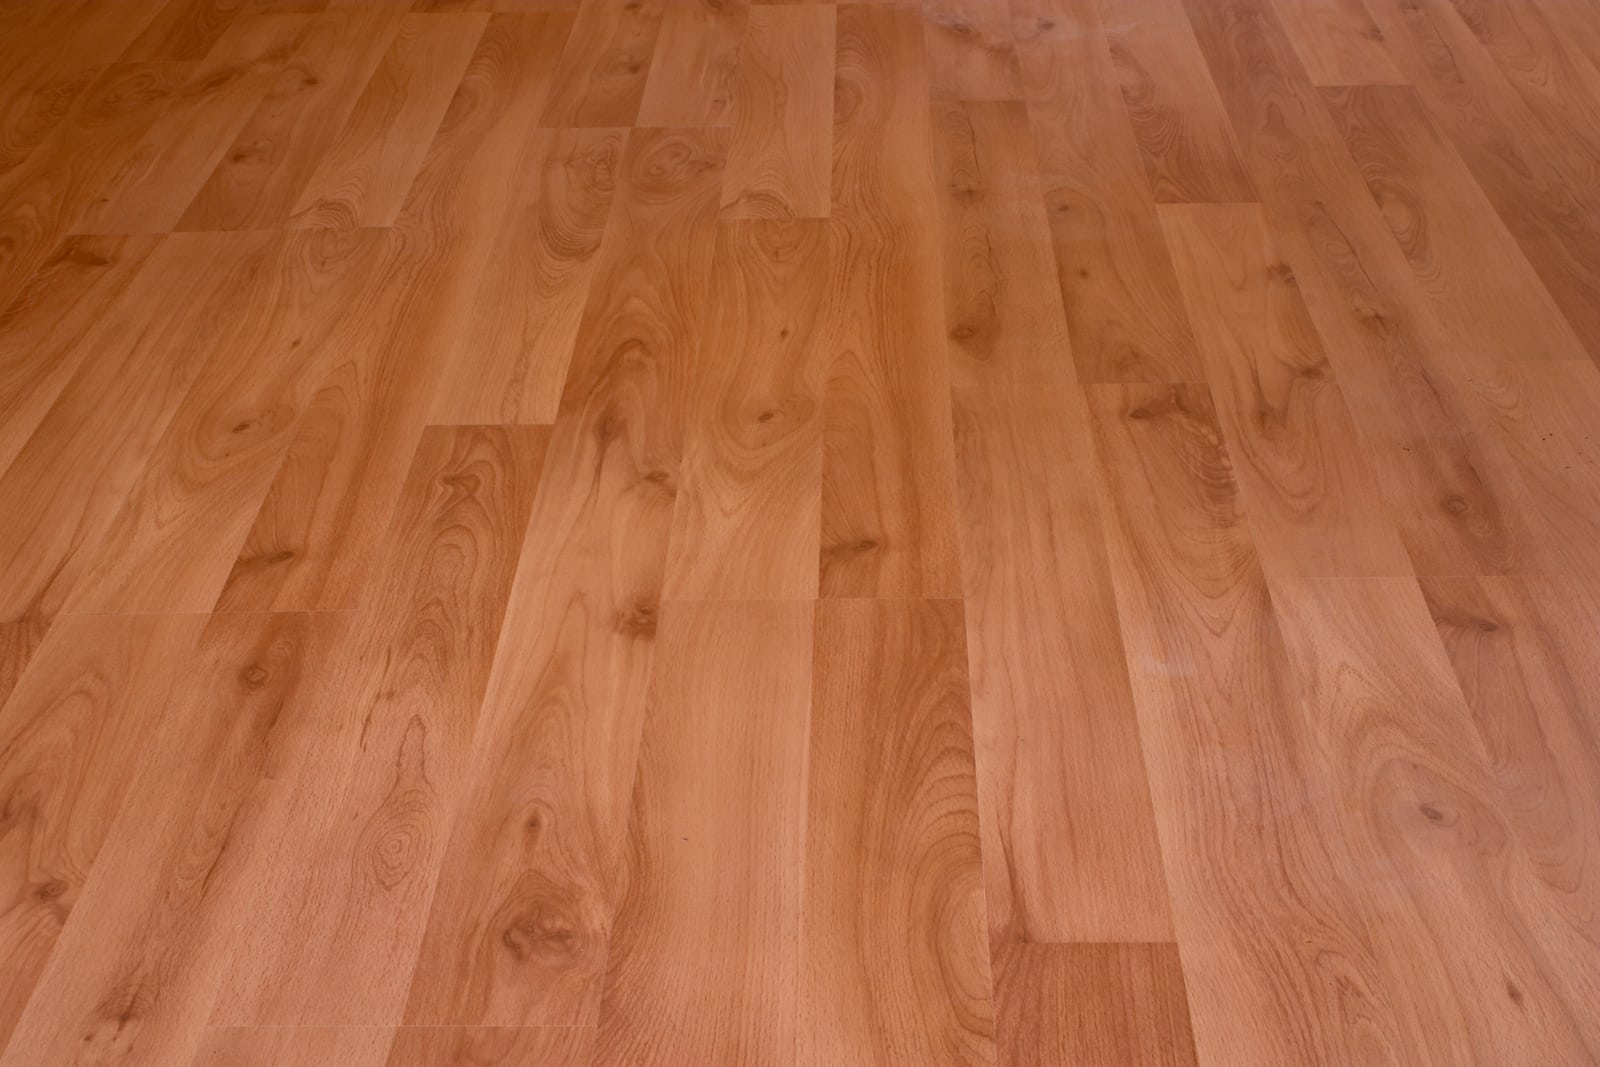 a brand new laminate floor with a birch grain